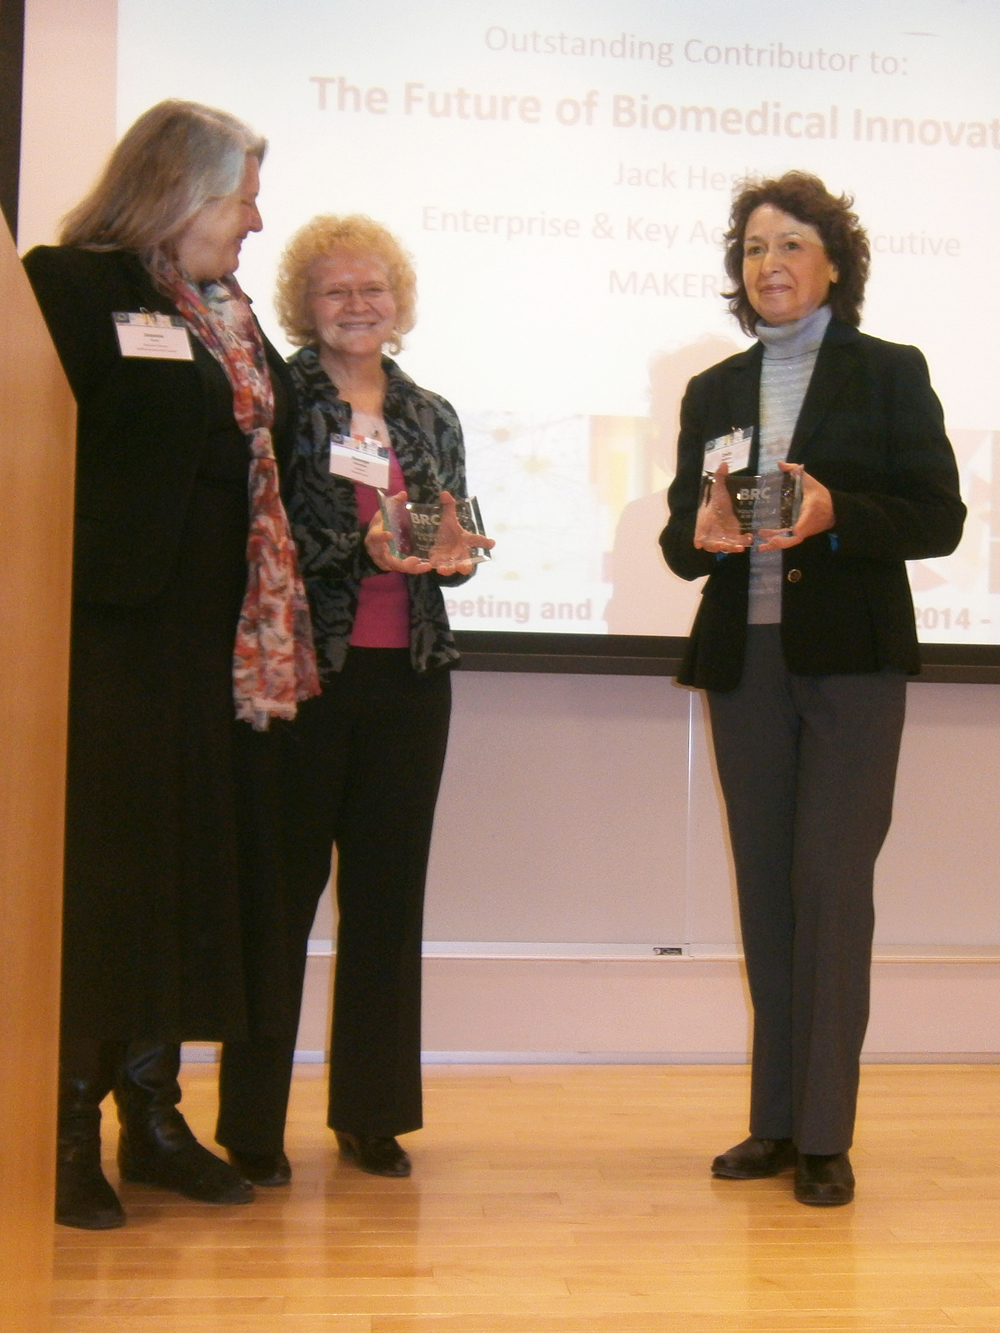 Dr. Dolly Koltchev receiving award.